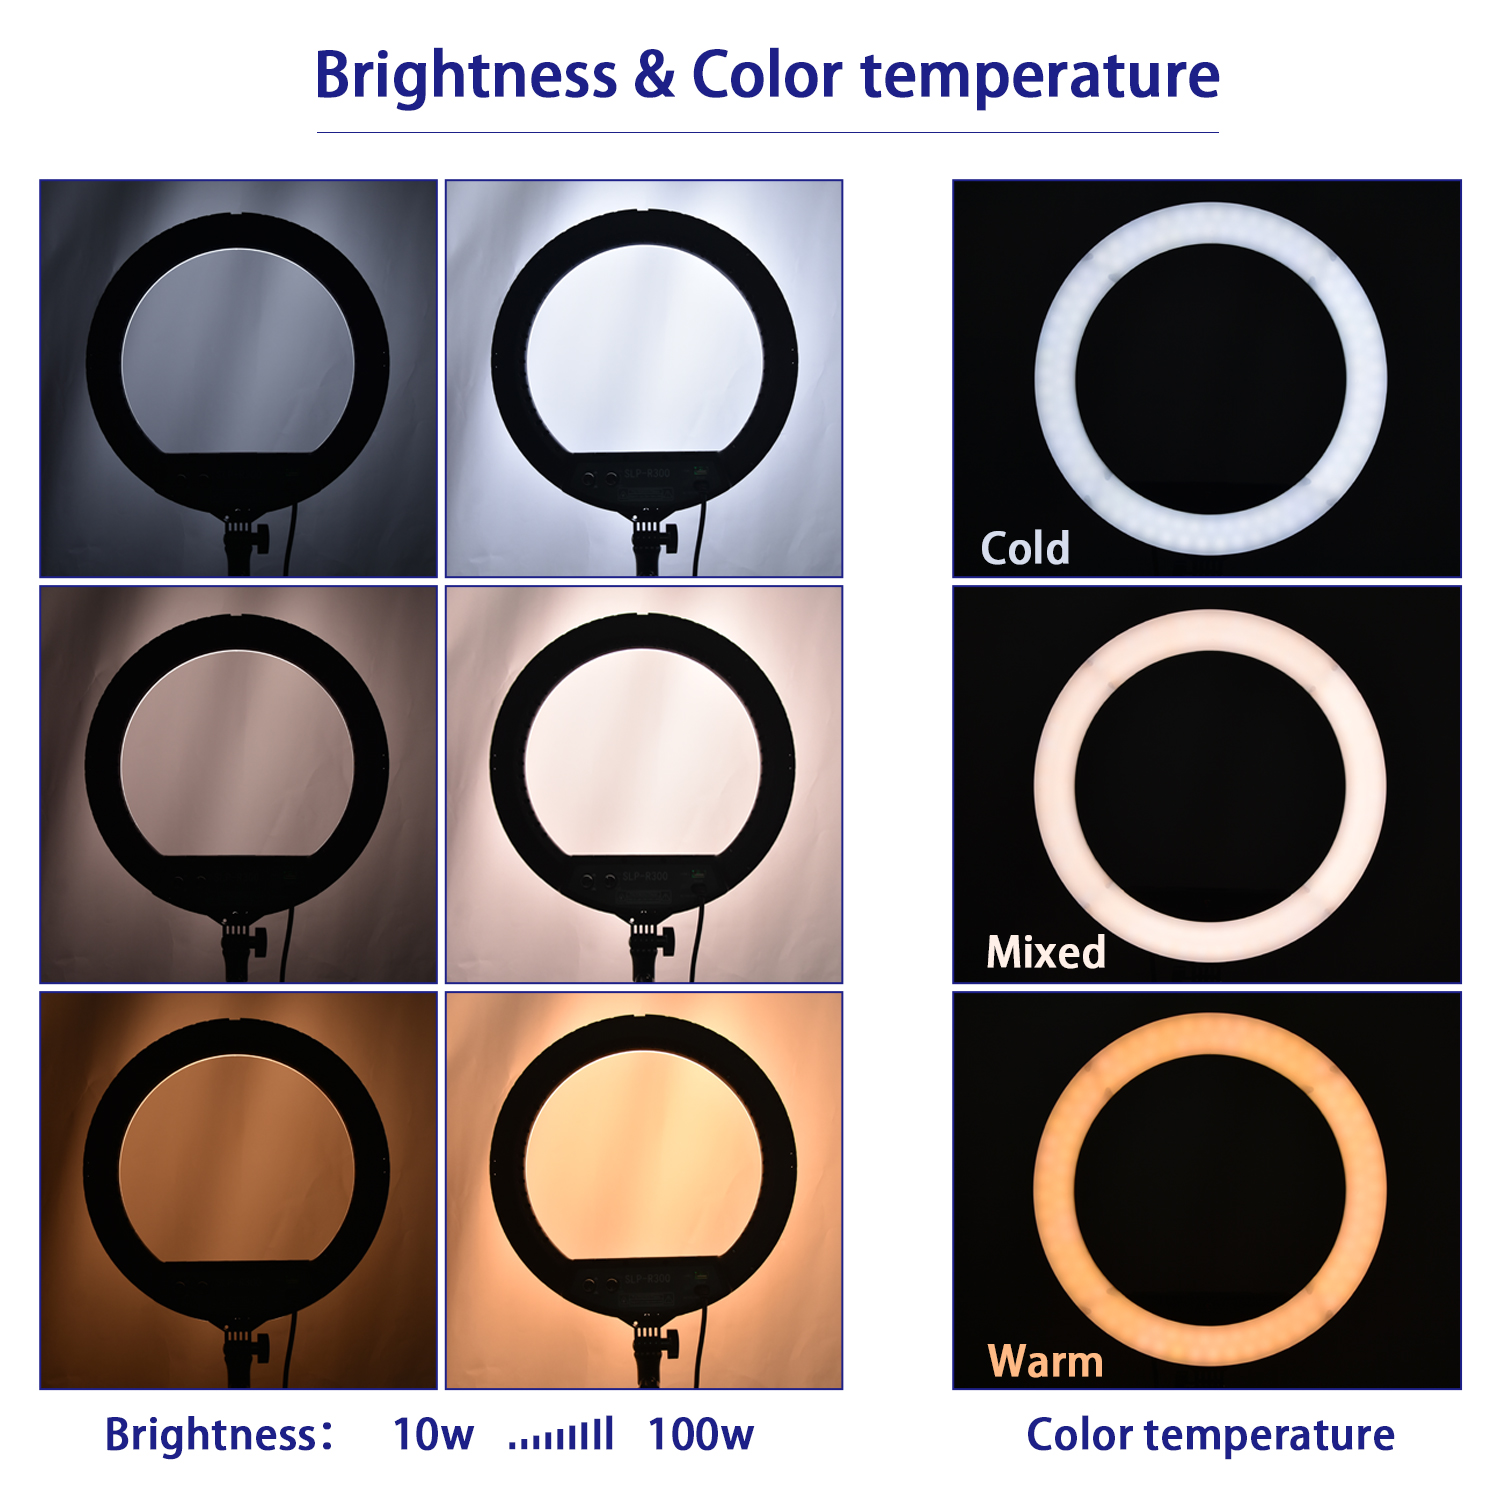 Hcfde0fe9b0444da29cbb31364ae4af11S fosoto LED Ring Light Selfie Photo Photography Lighting Ringlight lamp With Tripod Stand For Photo Studio Makeup Video Live Show